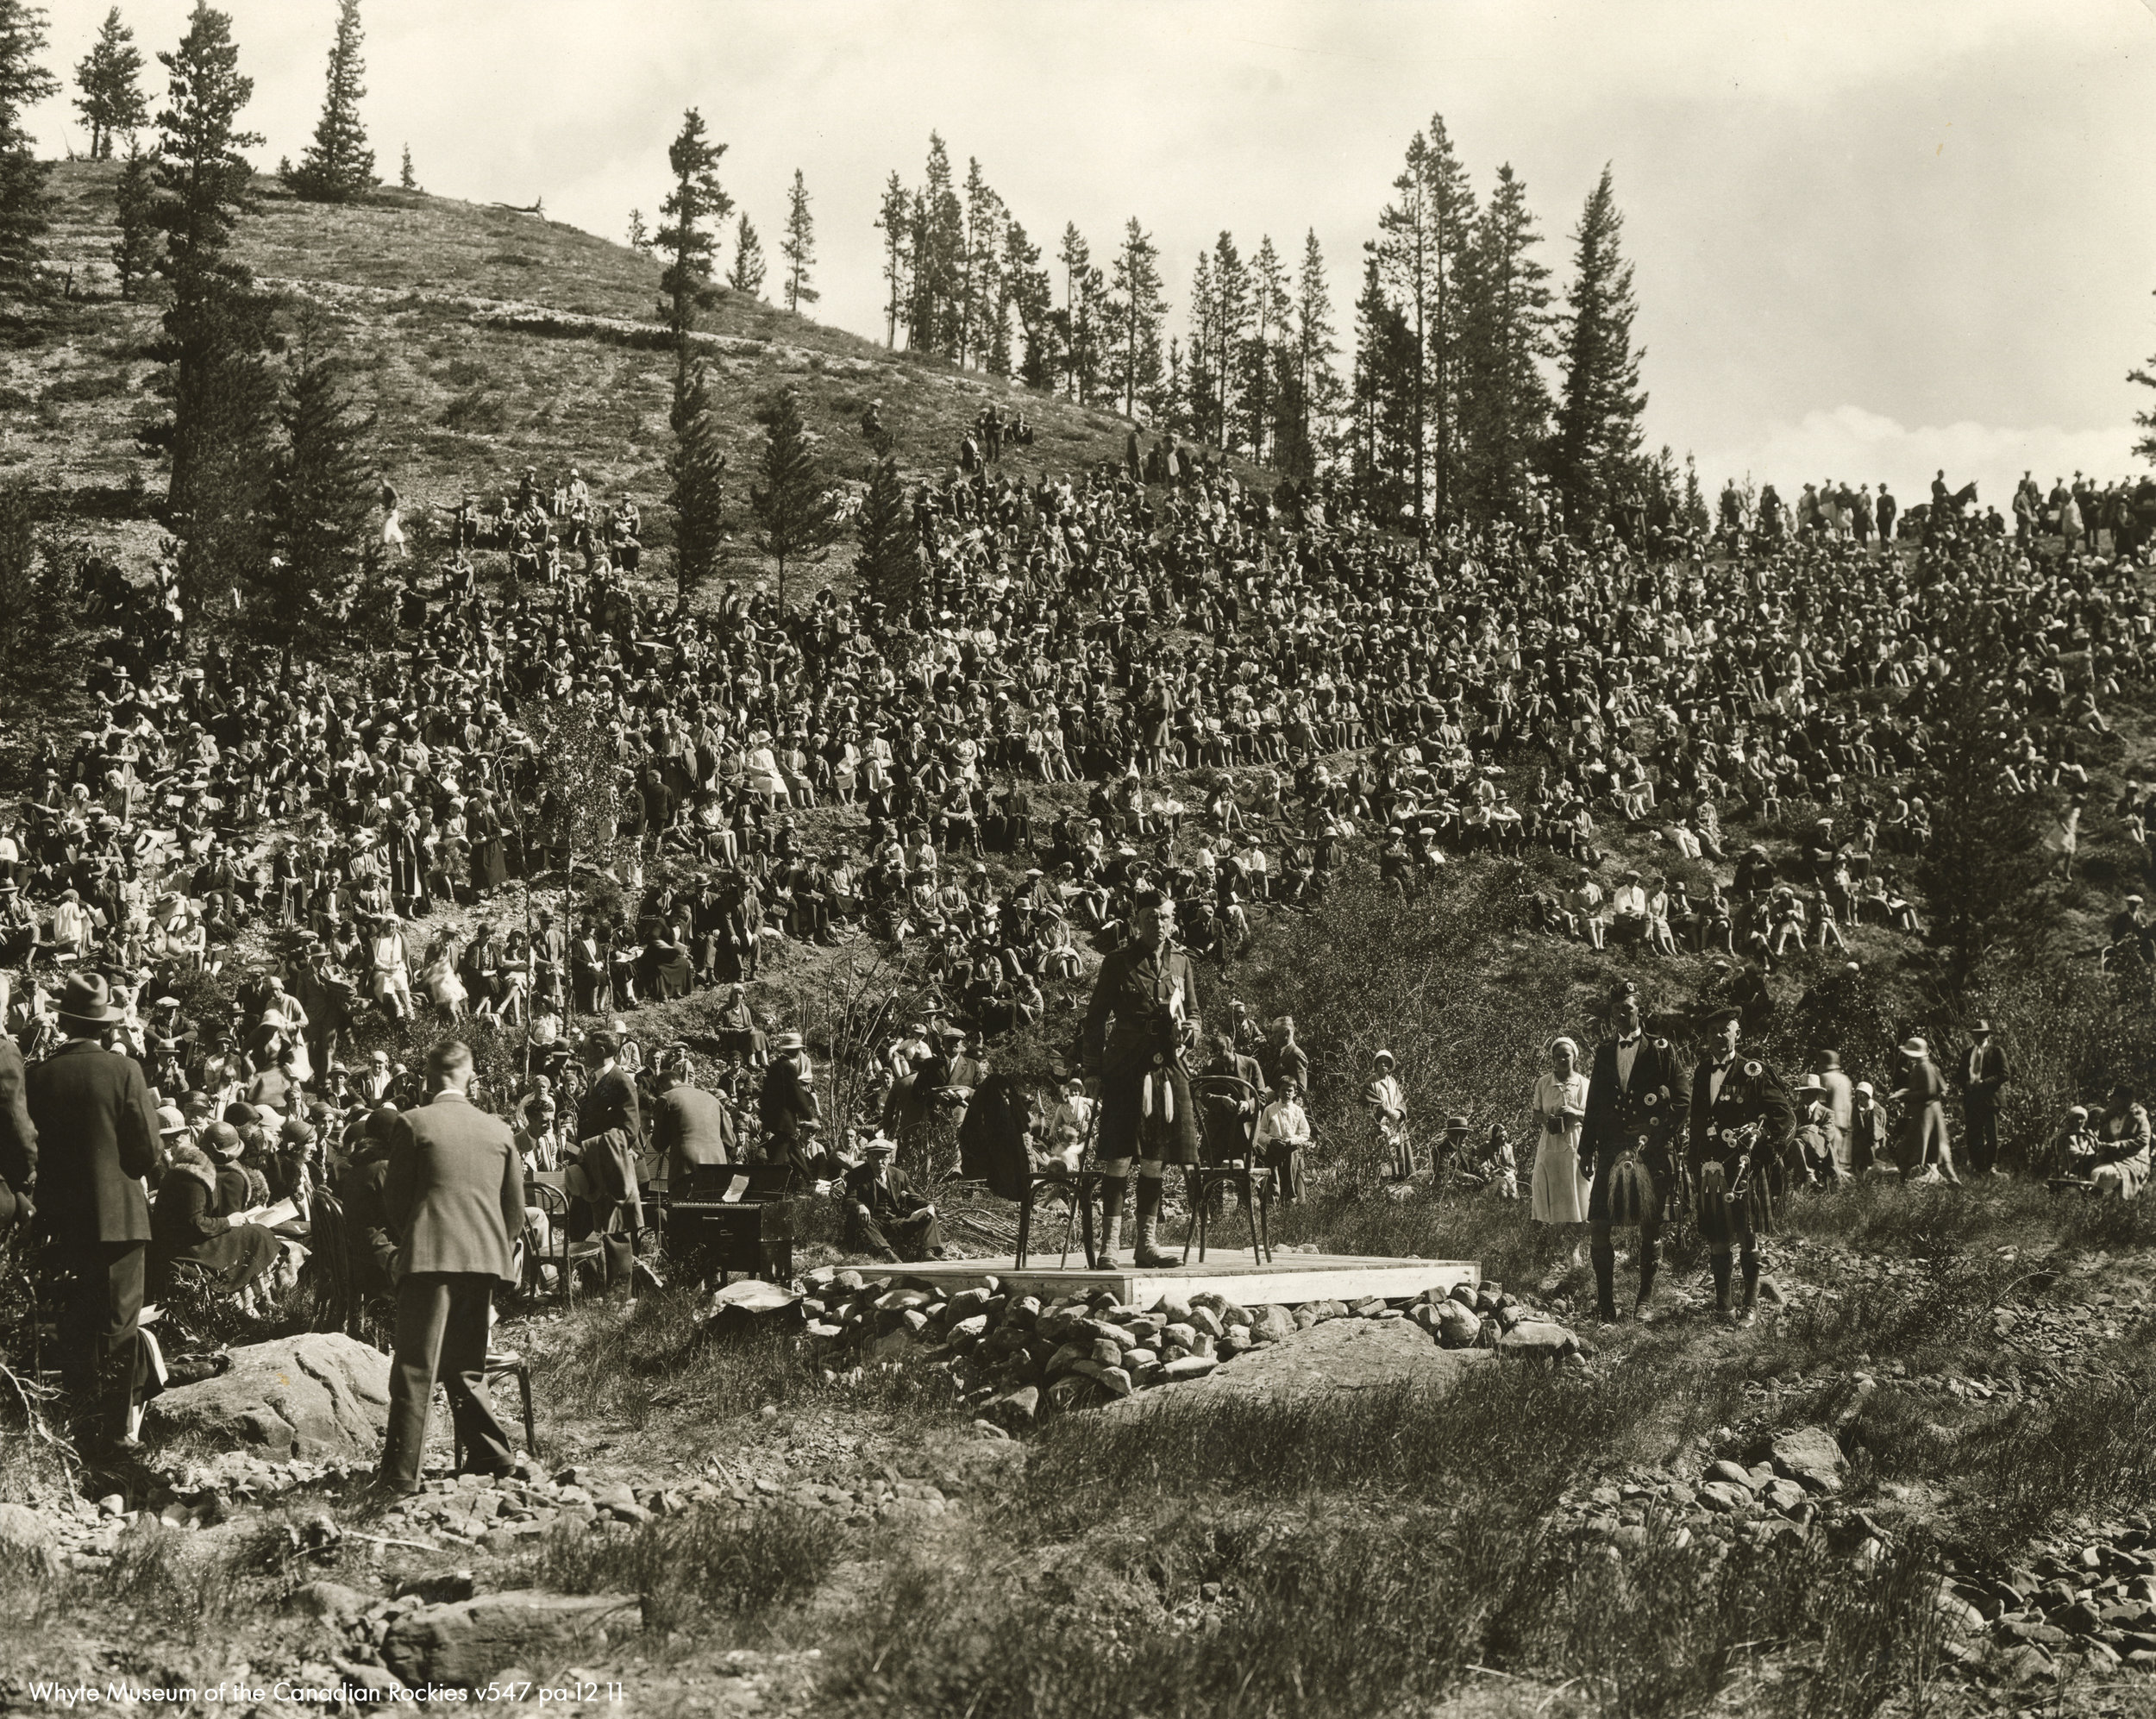 In front of thousands of attendees, dancers and musicians perform at the Banff Highland Gathering & Scottish Music Festival in the Devil's Cauldron. This photo is from the 1930 gathering and shows the view looking up towards the tees.